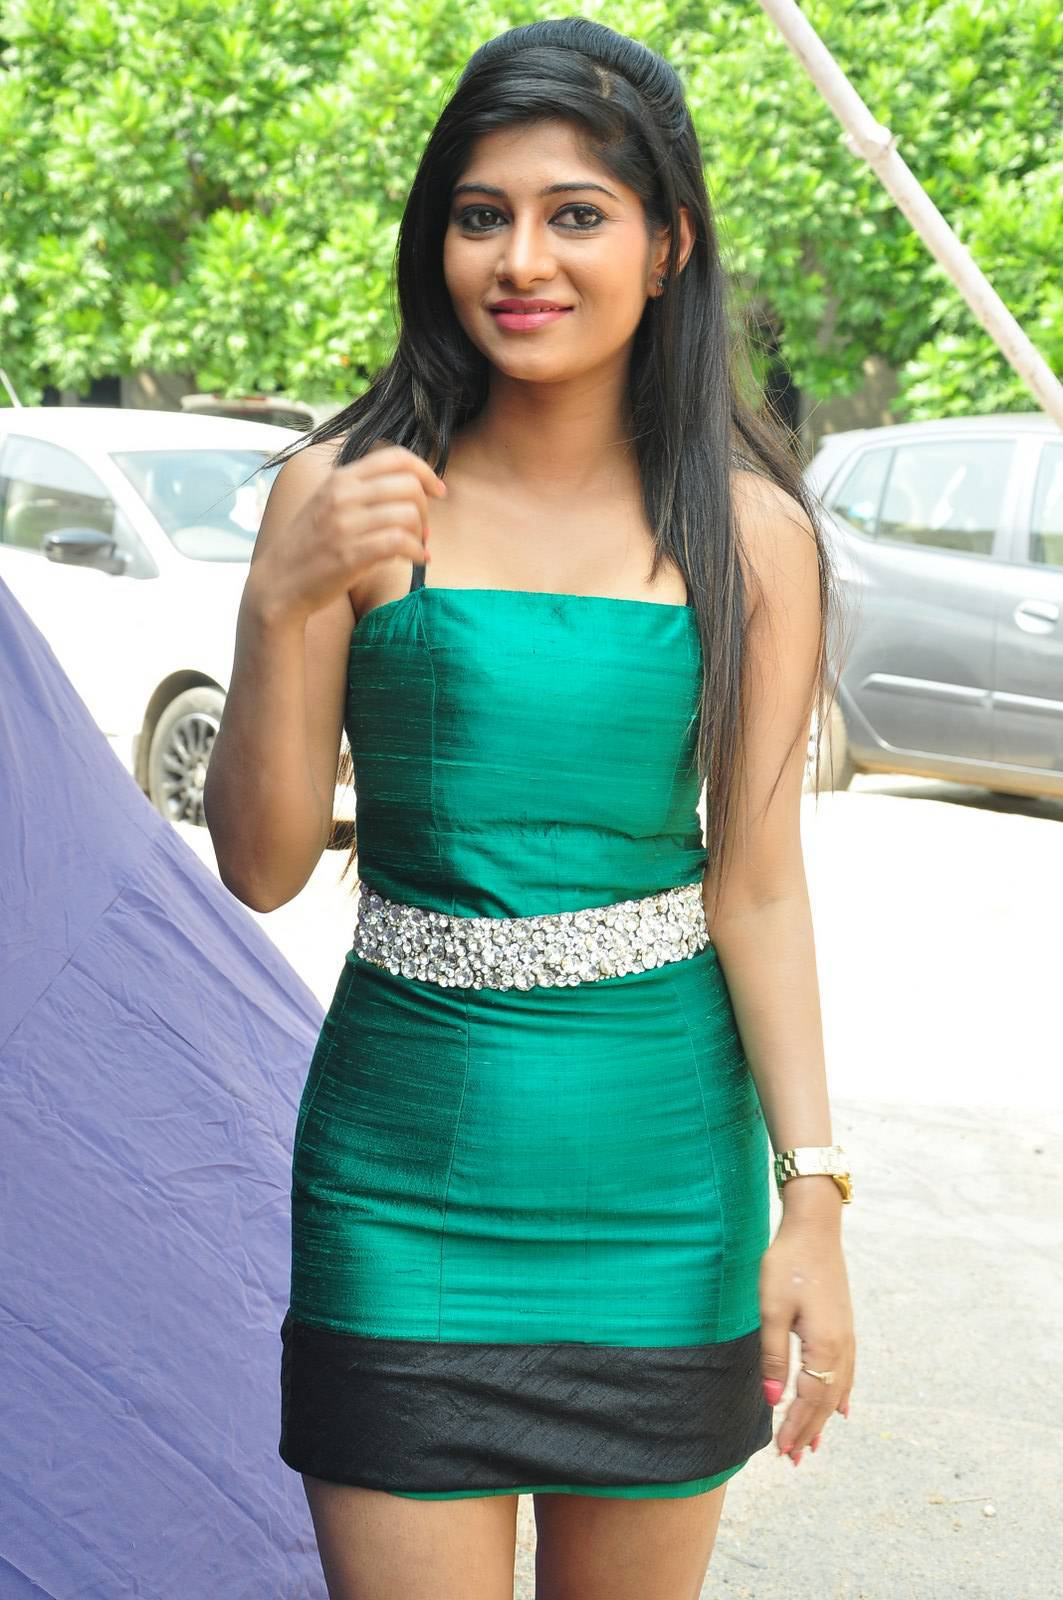 Actress Madhura Latest Cute Hot Green Mini Skirt Dress Spicy Thighs Show Photos Gallery At Raa Rammani Movie Launch